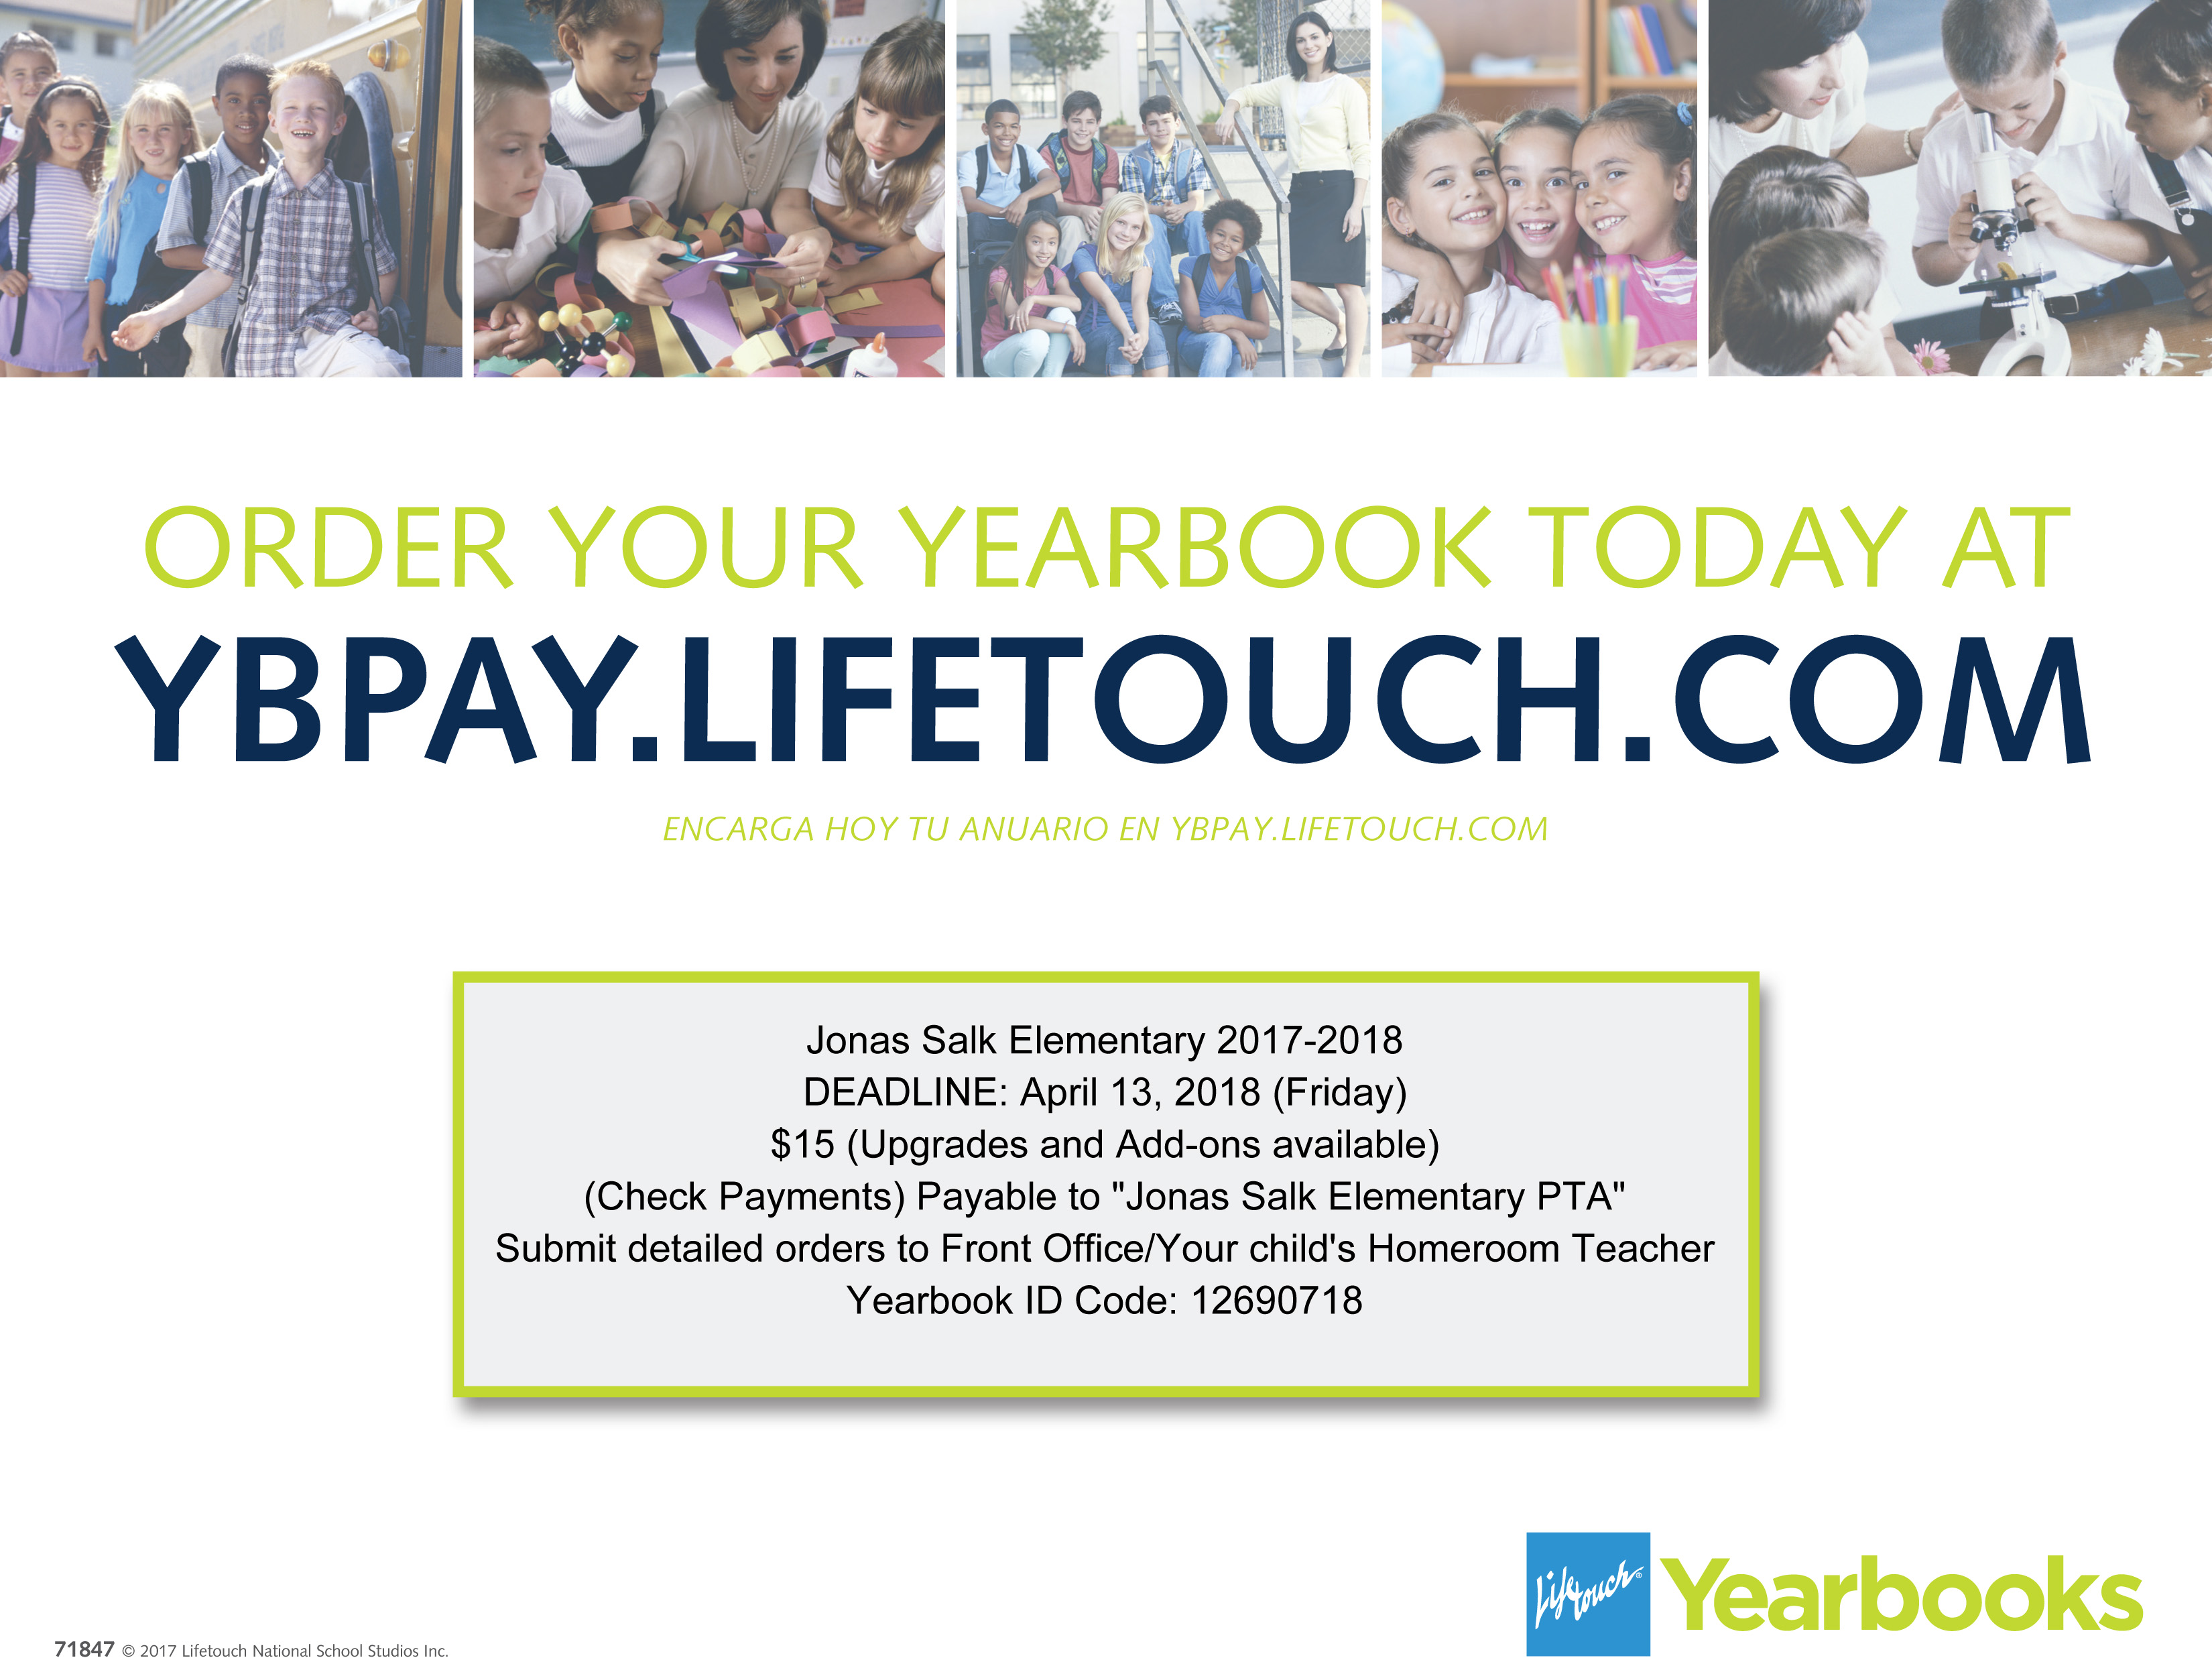 Lifetouch yearbook Login Page Free internet Radio Stations